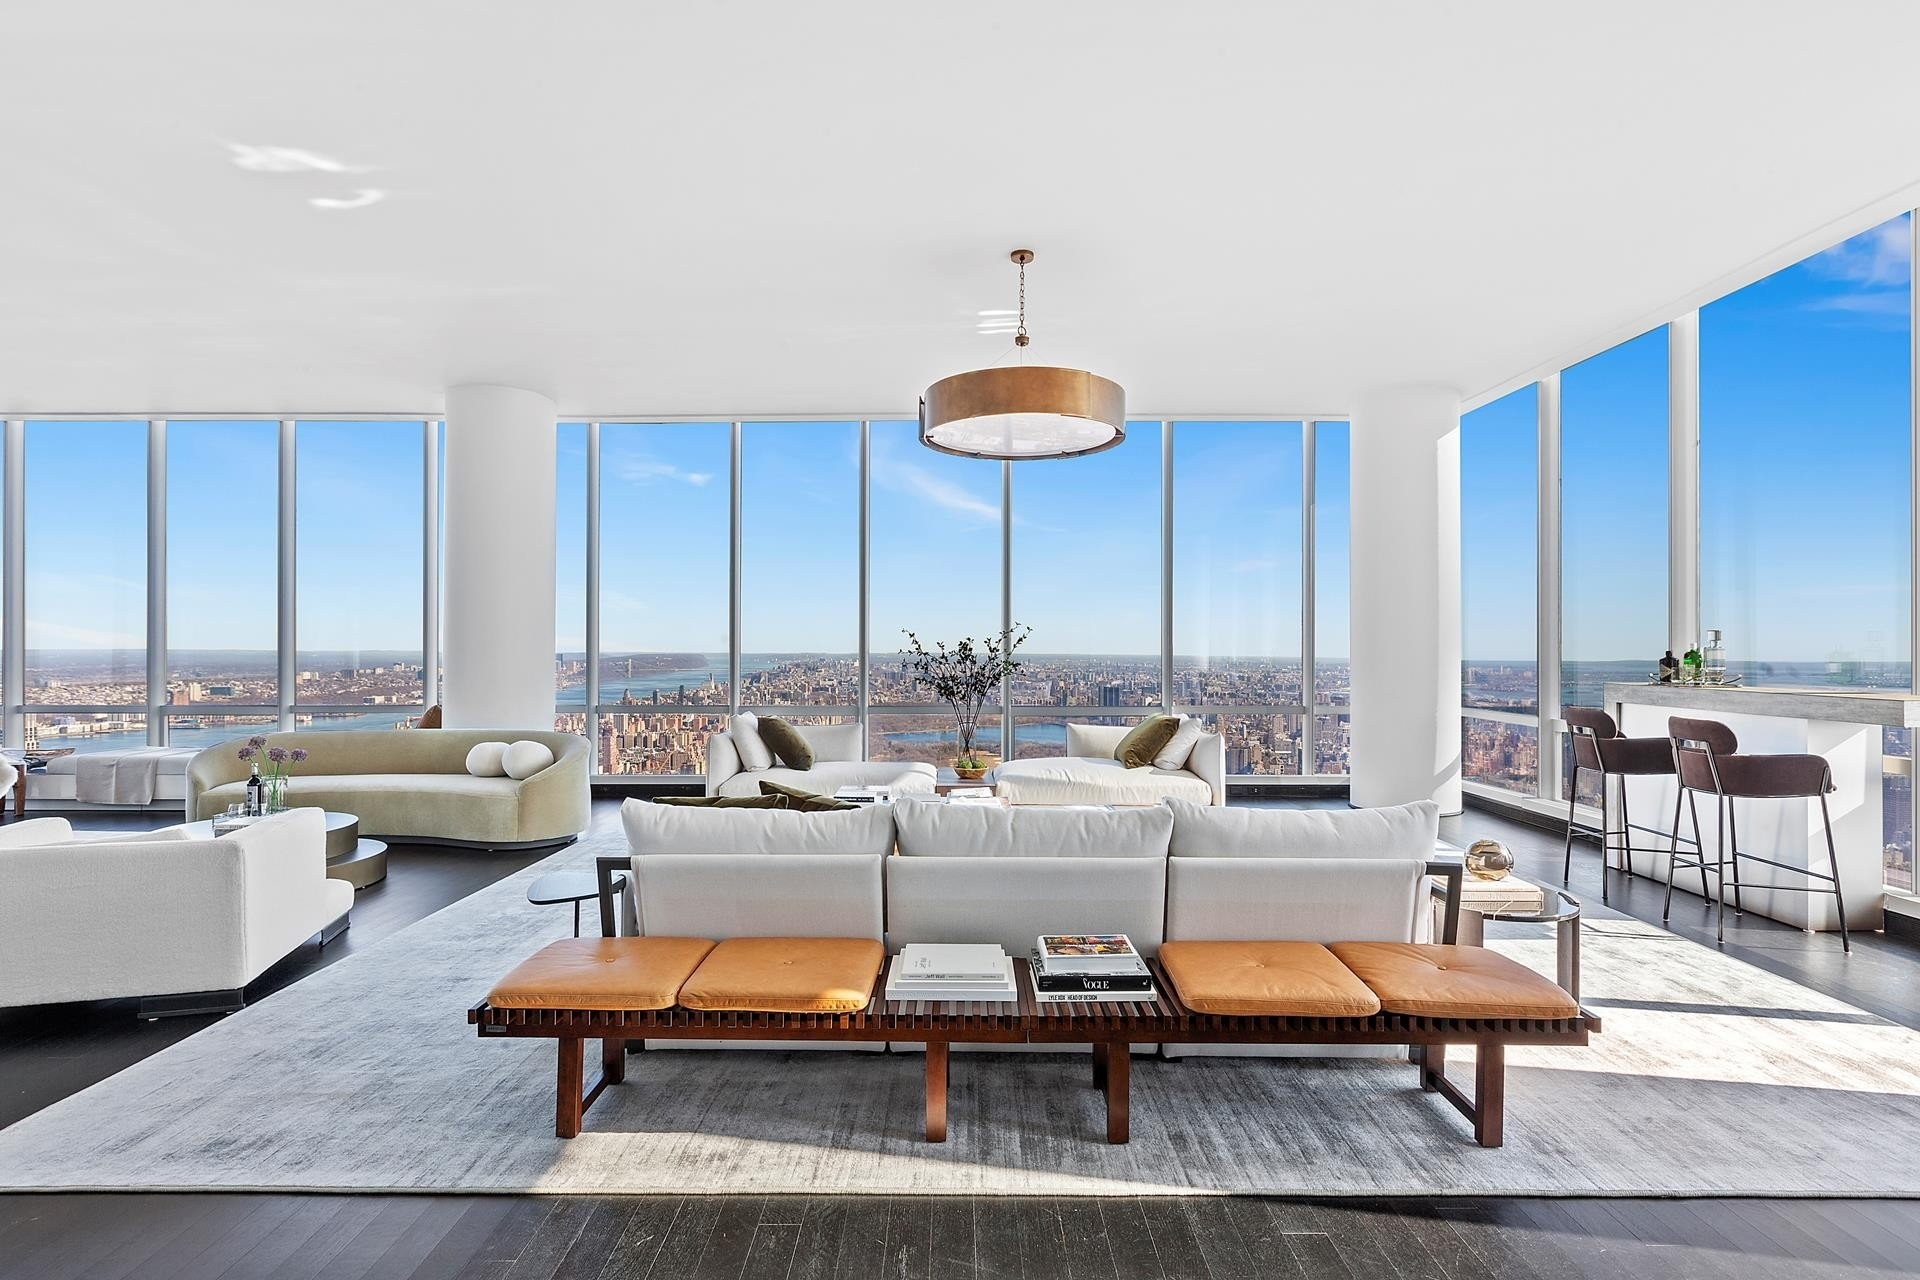 Property в One57, 157 W 57TH ST , 87 Midtown West, New York, NY 10019